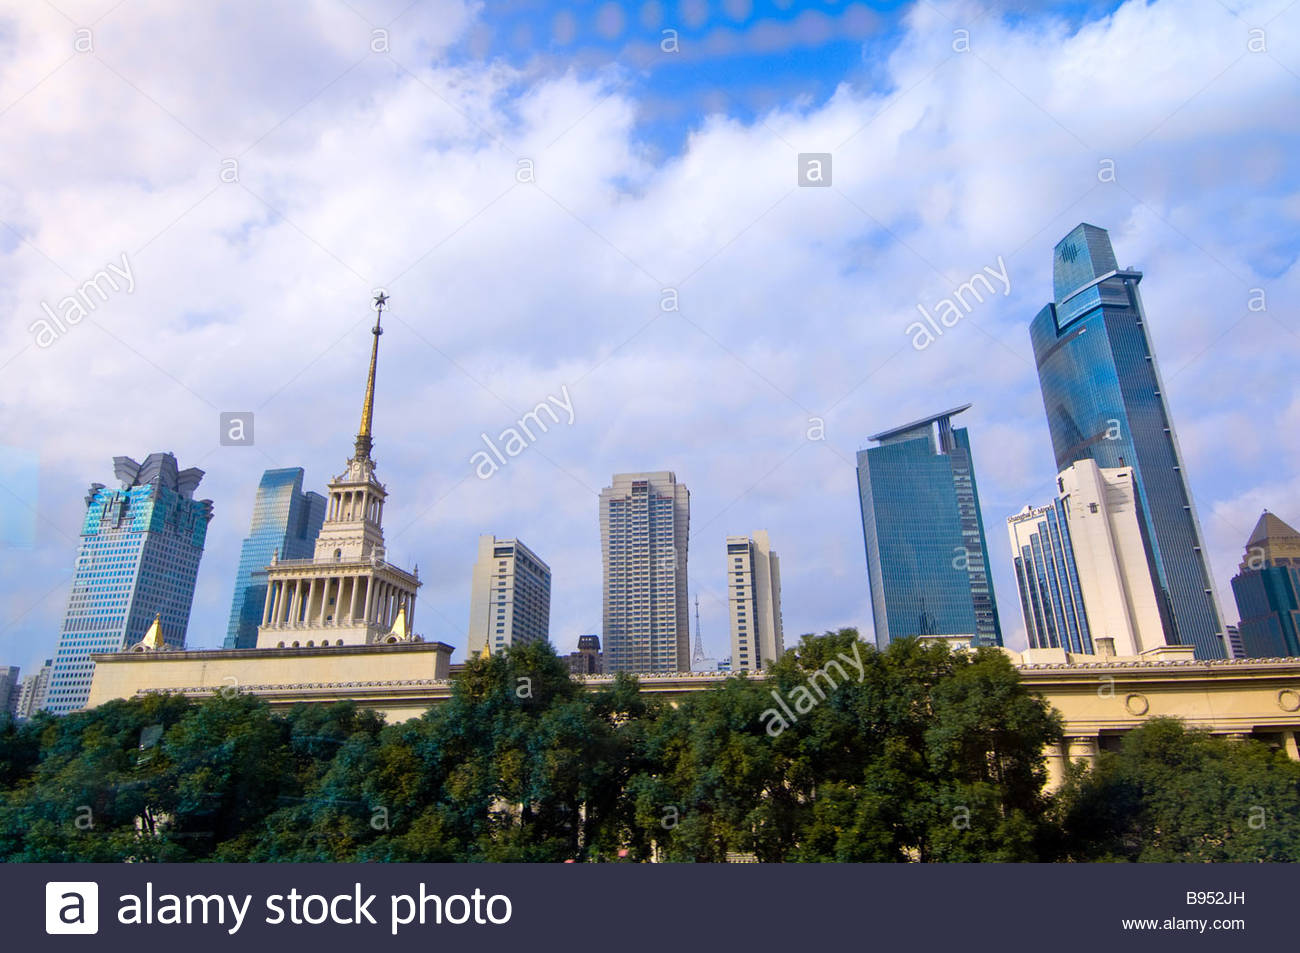 The Shanghai Exhibition Center Stalinist architecture in foreground with modern skyscapers behind Shanghai China - Stock Image